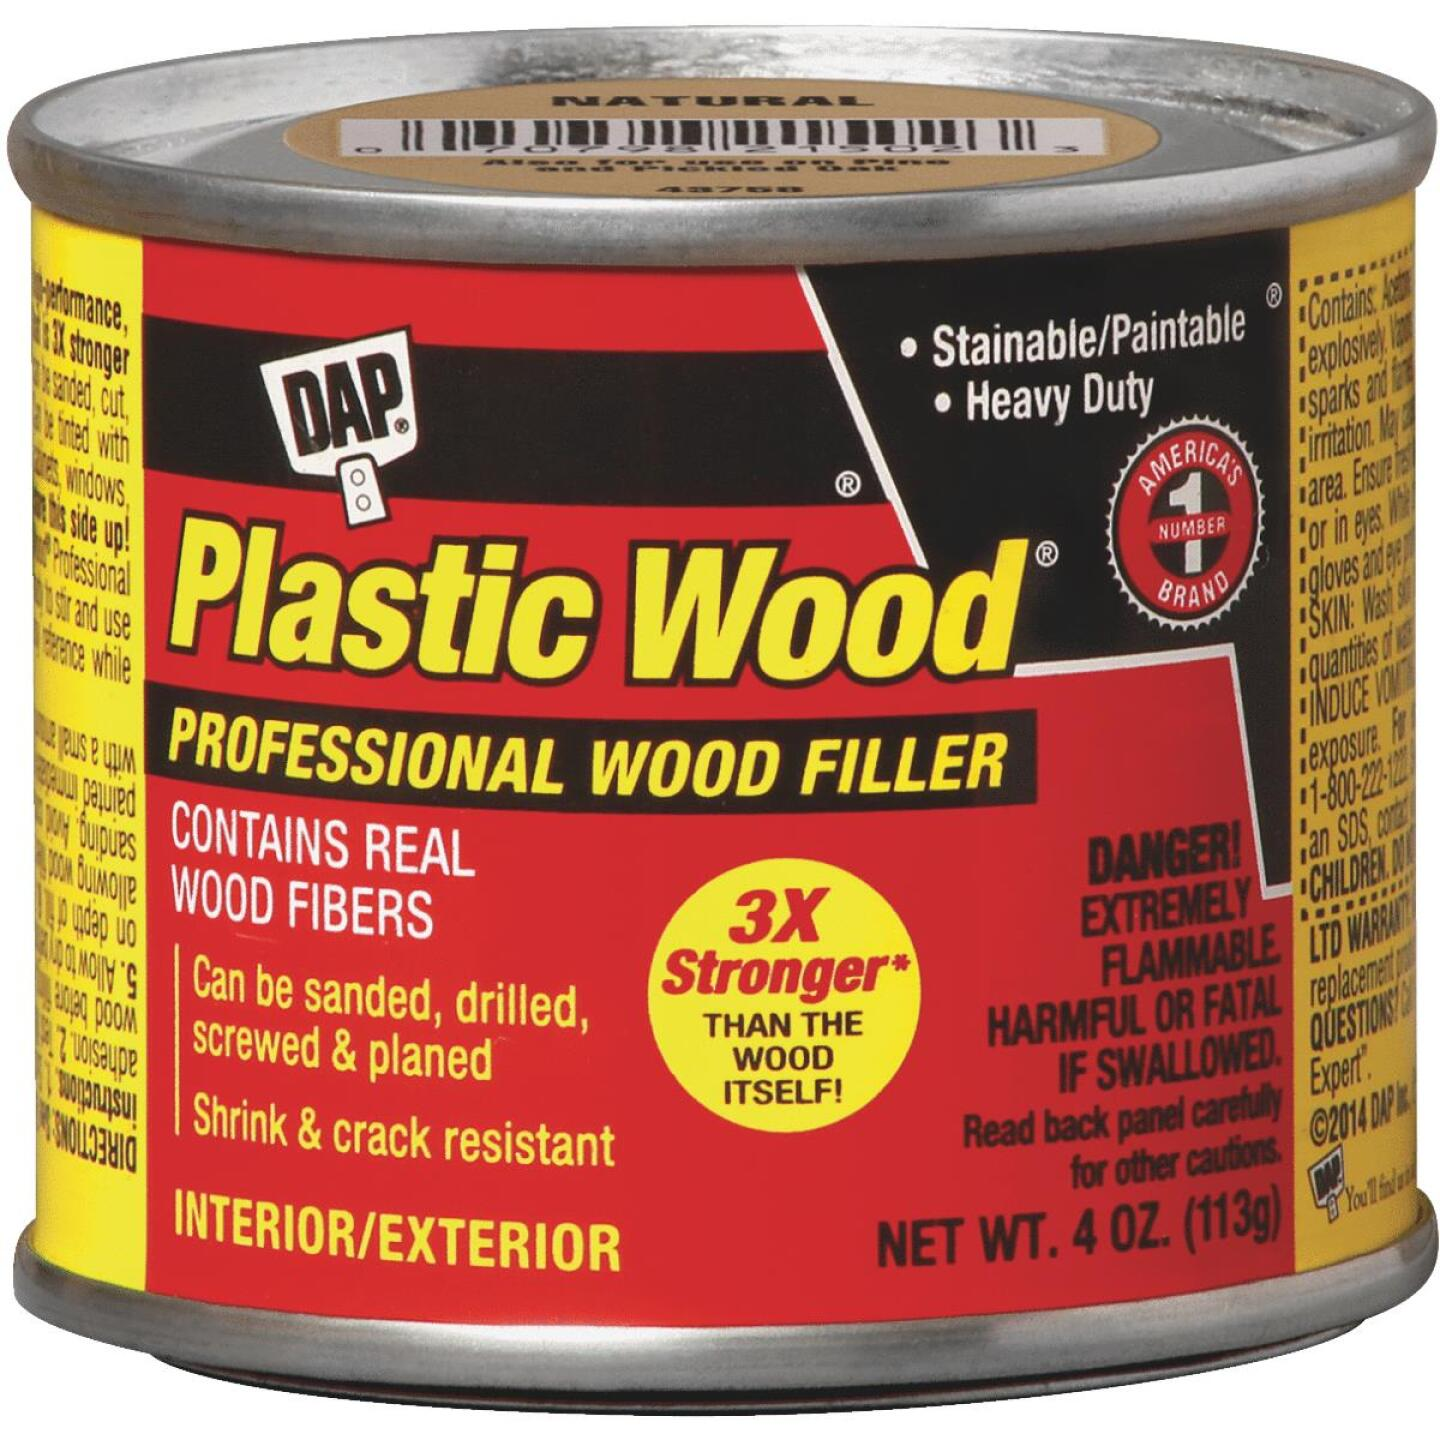 DAP Plastic Wood 4 Oz. Gold Oak Solvent Professional Wood Filler Image 1